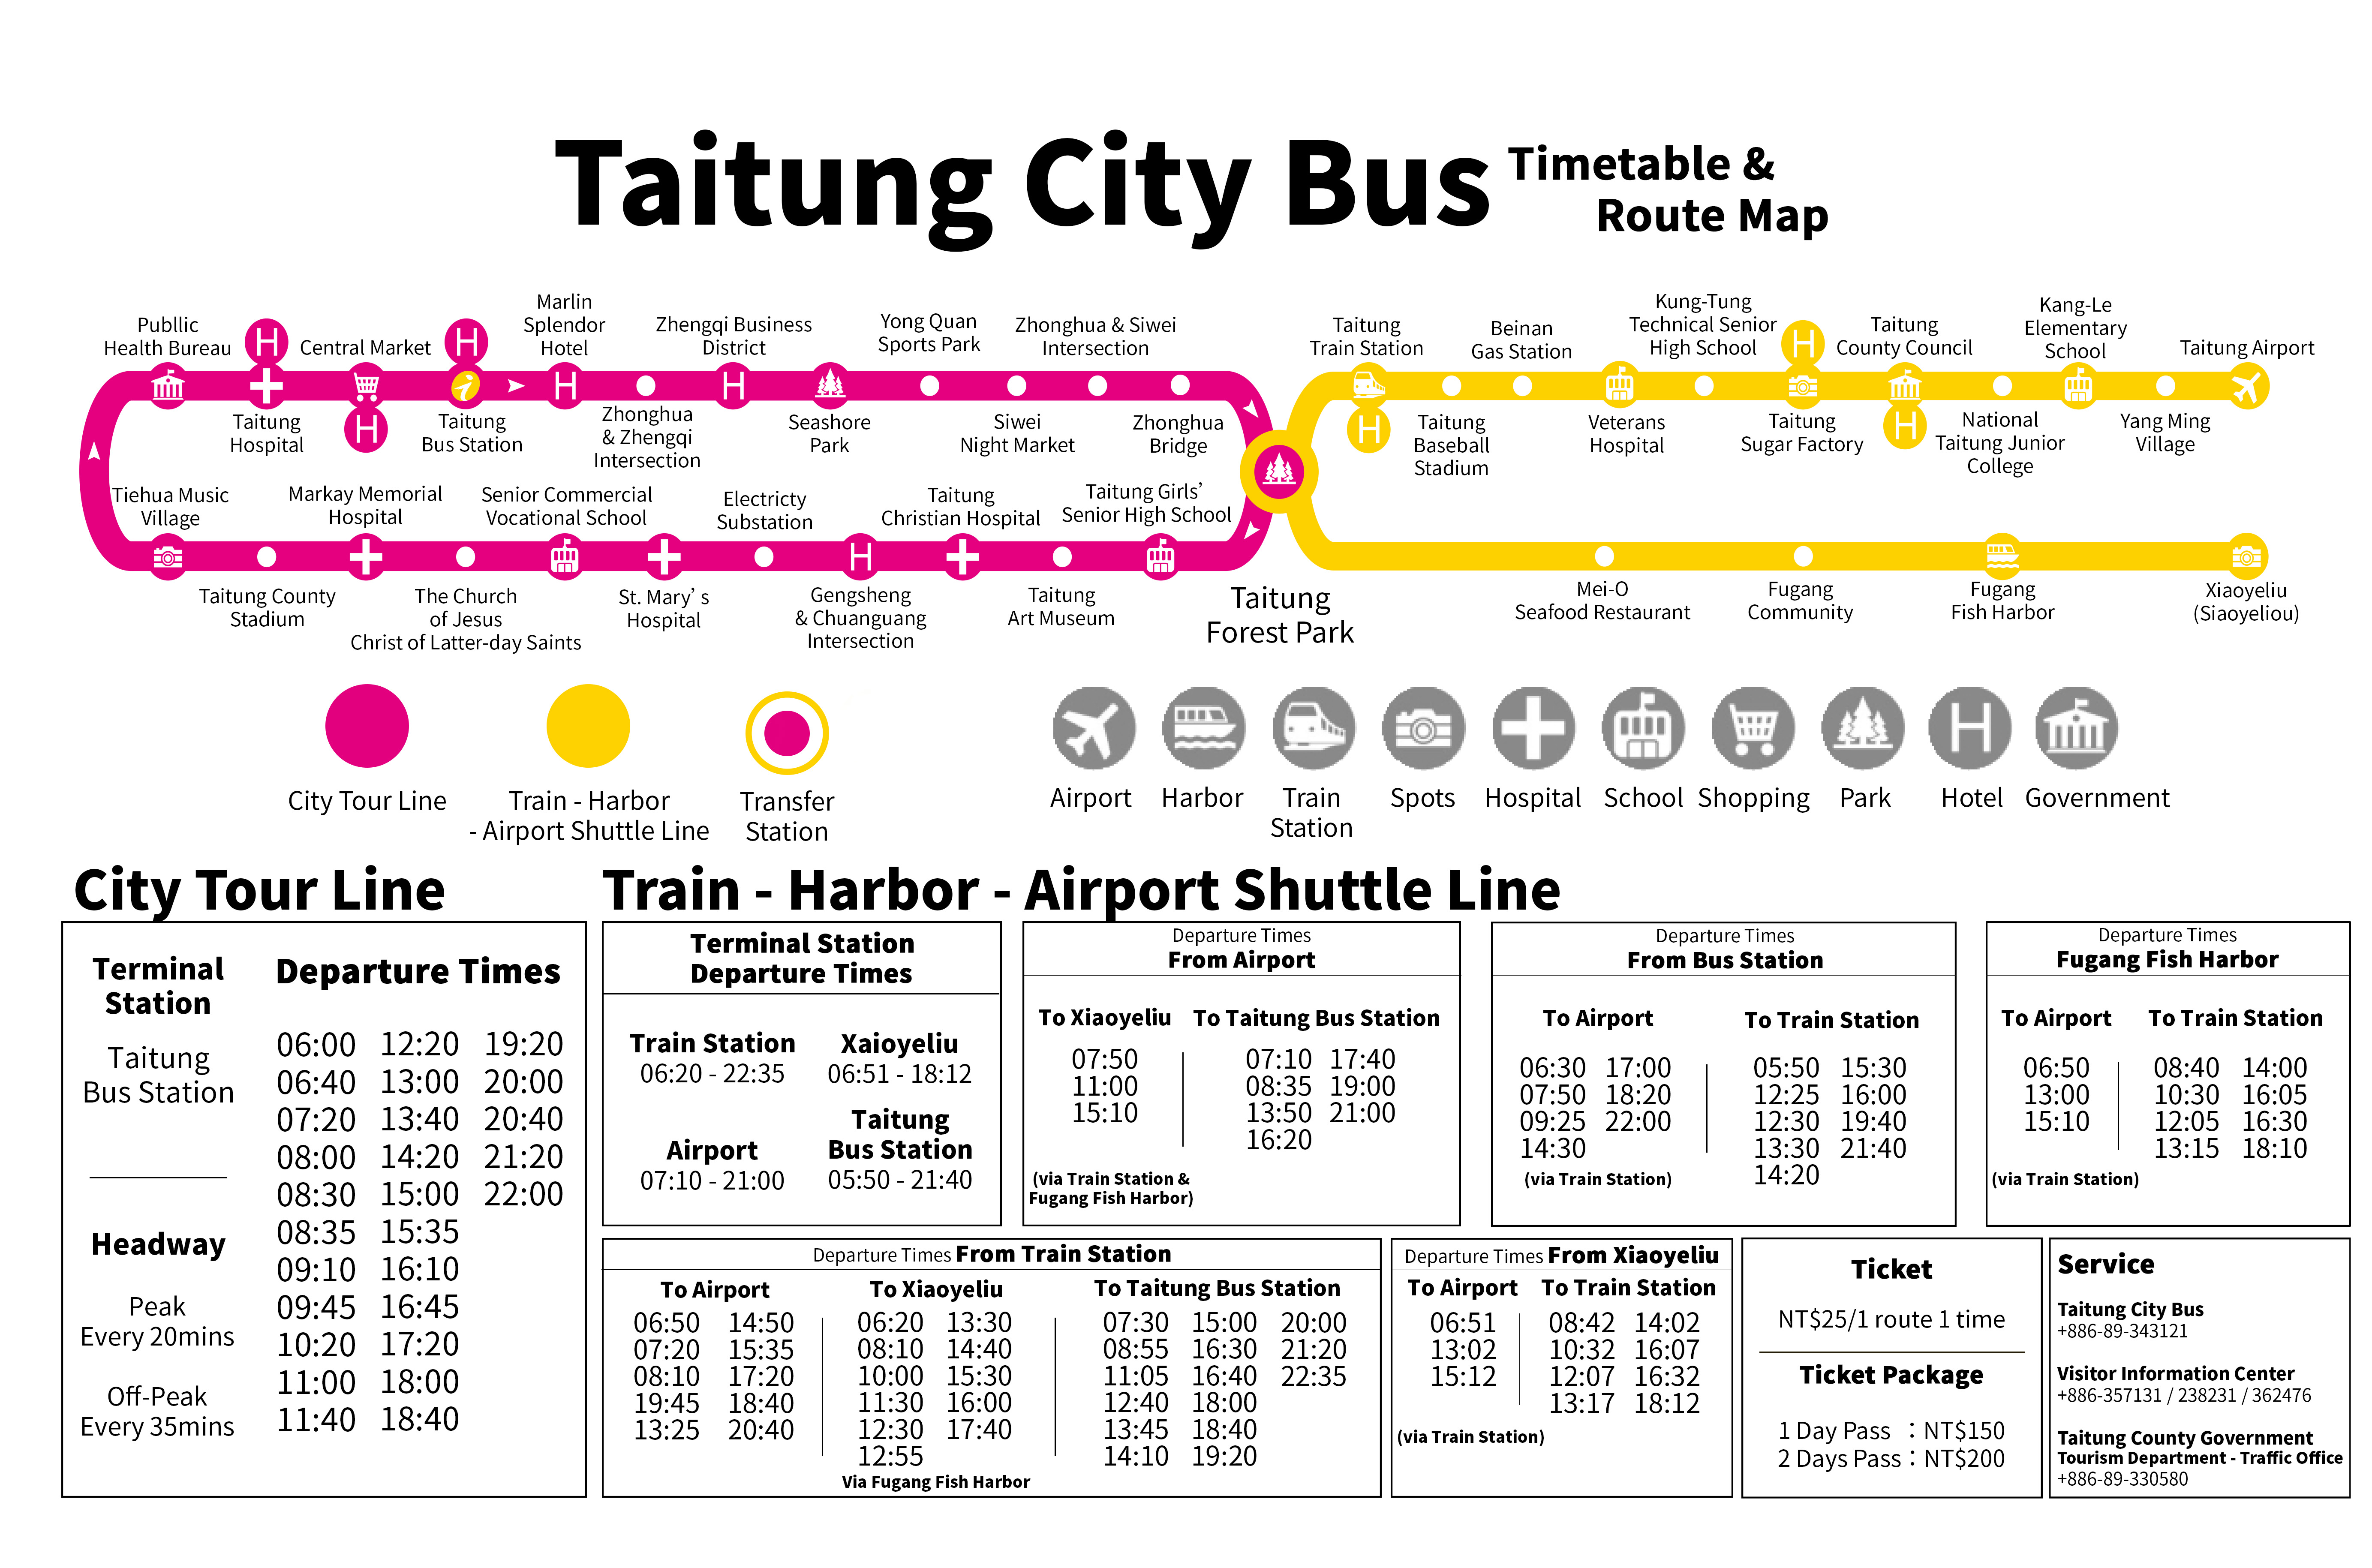 Taitung City Bus Timetable & Route Map | Taitung Travel on b13 bus map, bus template, bus routes los angeles, bus travel to georgia, bus san francisco 1960, bus models, bus routes in plymouth england, qm5 bus map, bus routes in maui hawaii, bus field trip, bus routes in central london, m35 bus map, bus routes logo, bus schedule, bus stop location map, b47 bus map, bus seat map, bus routes oahu hawaii, bus routes colorado springs co,